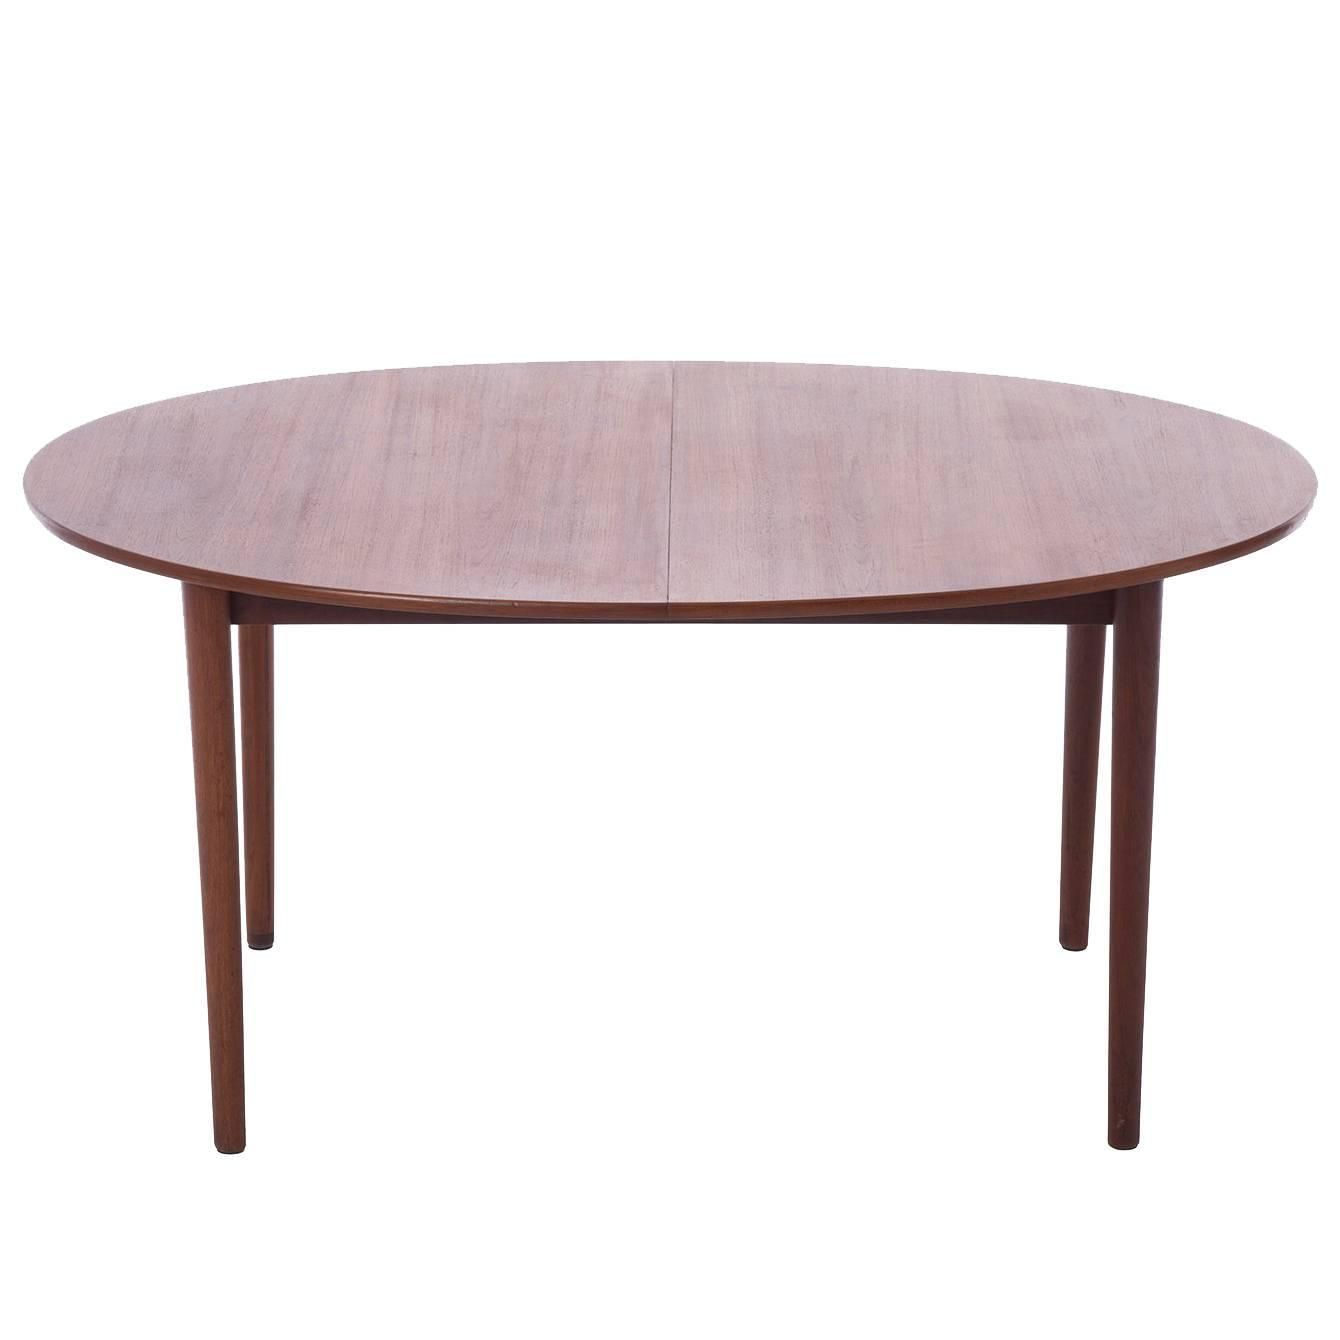 Danish Modern Oval Ellipse Dining Table With Two Leaves Stuff For - Modern oval dining table with leaf